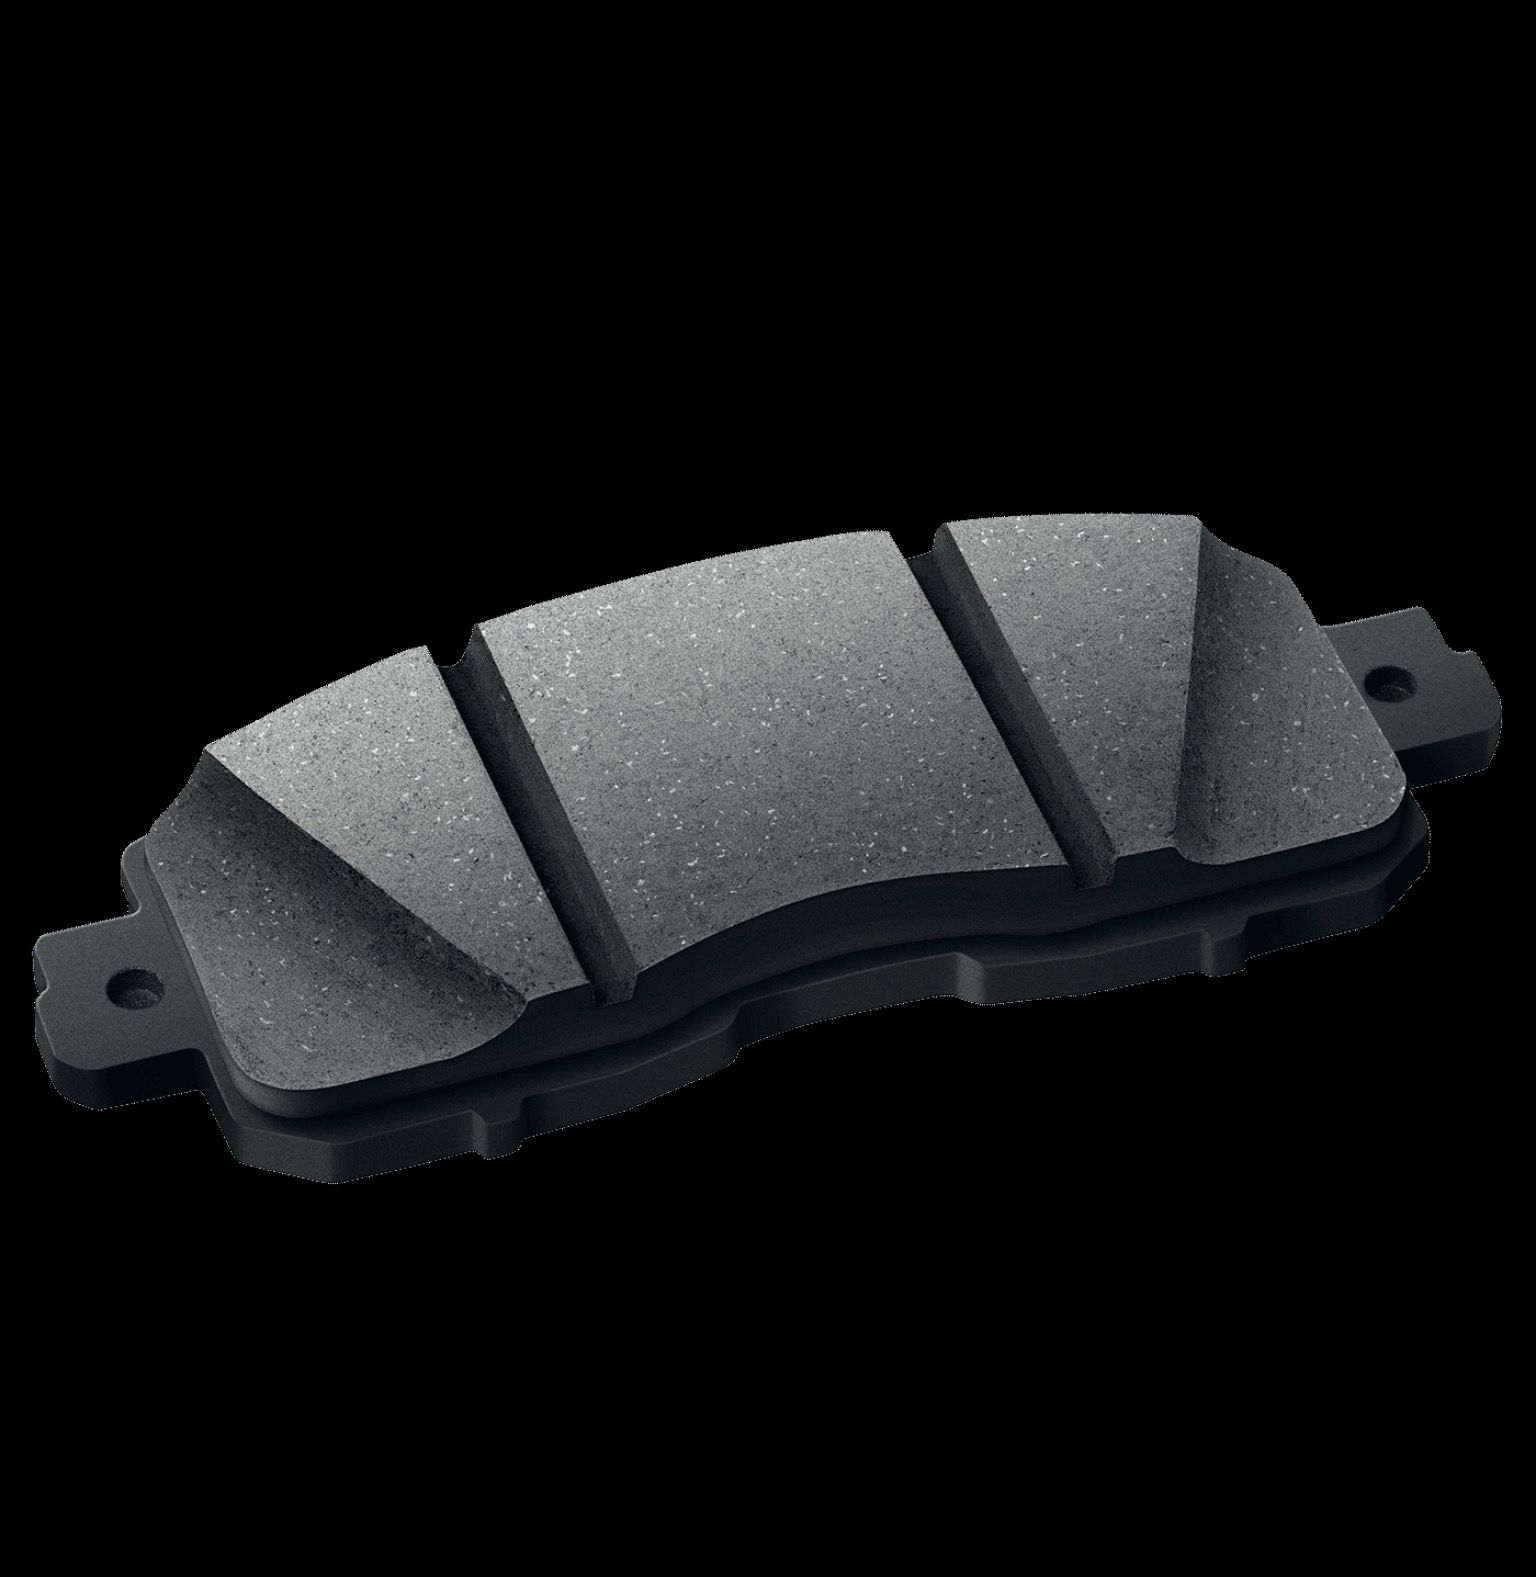 Replace your car's brake pads from wear and tear by